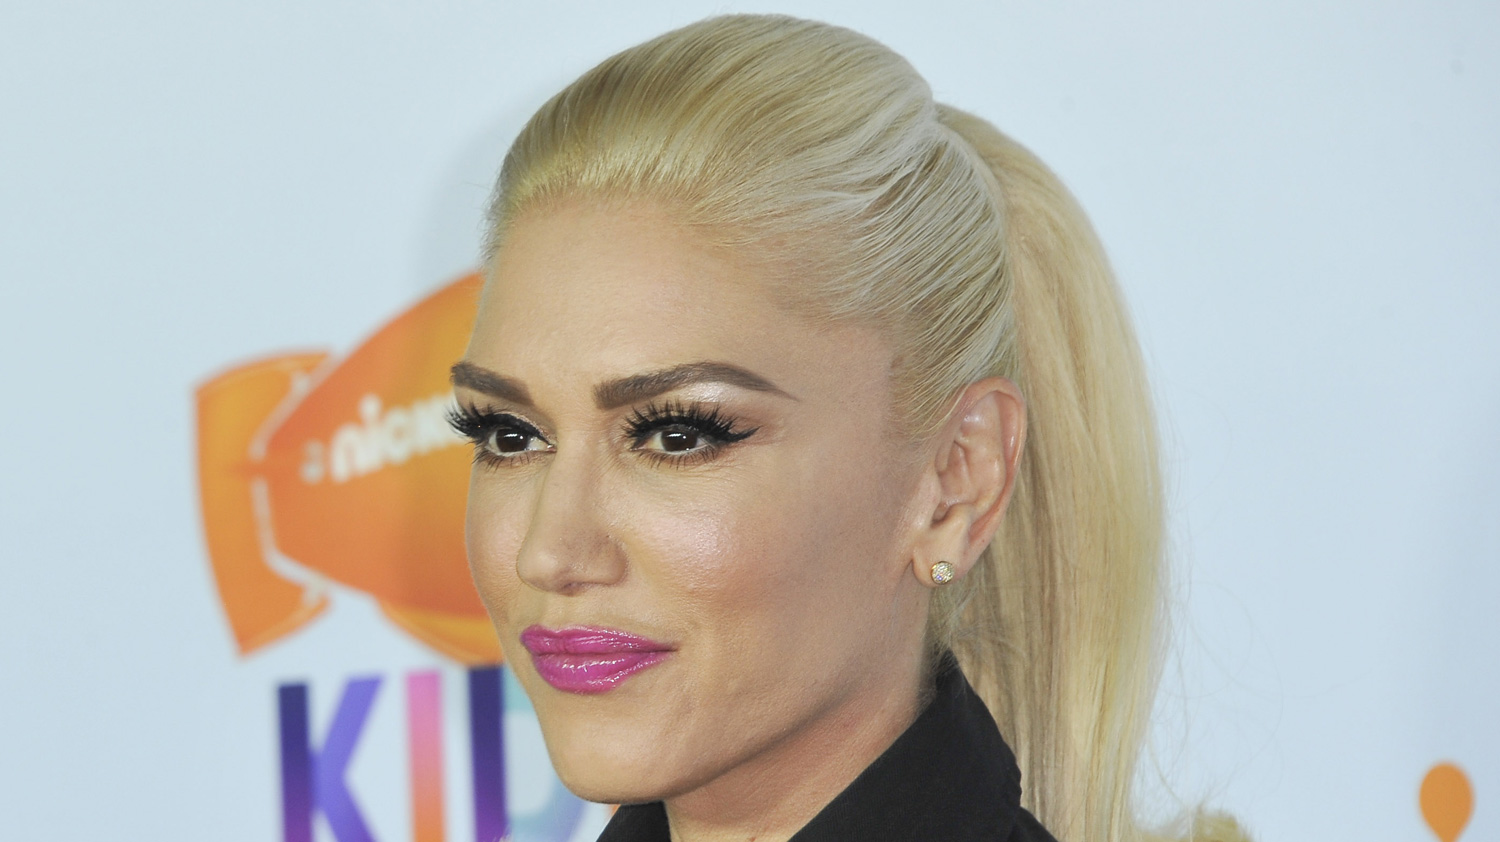 Gwen Stefani Sued By Fan Over Stampede at Concert | Gwen ... гвен стефани